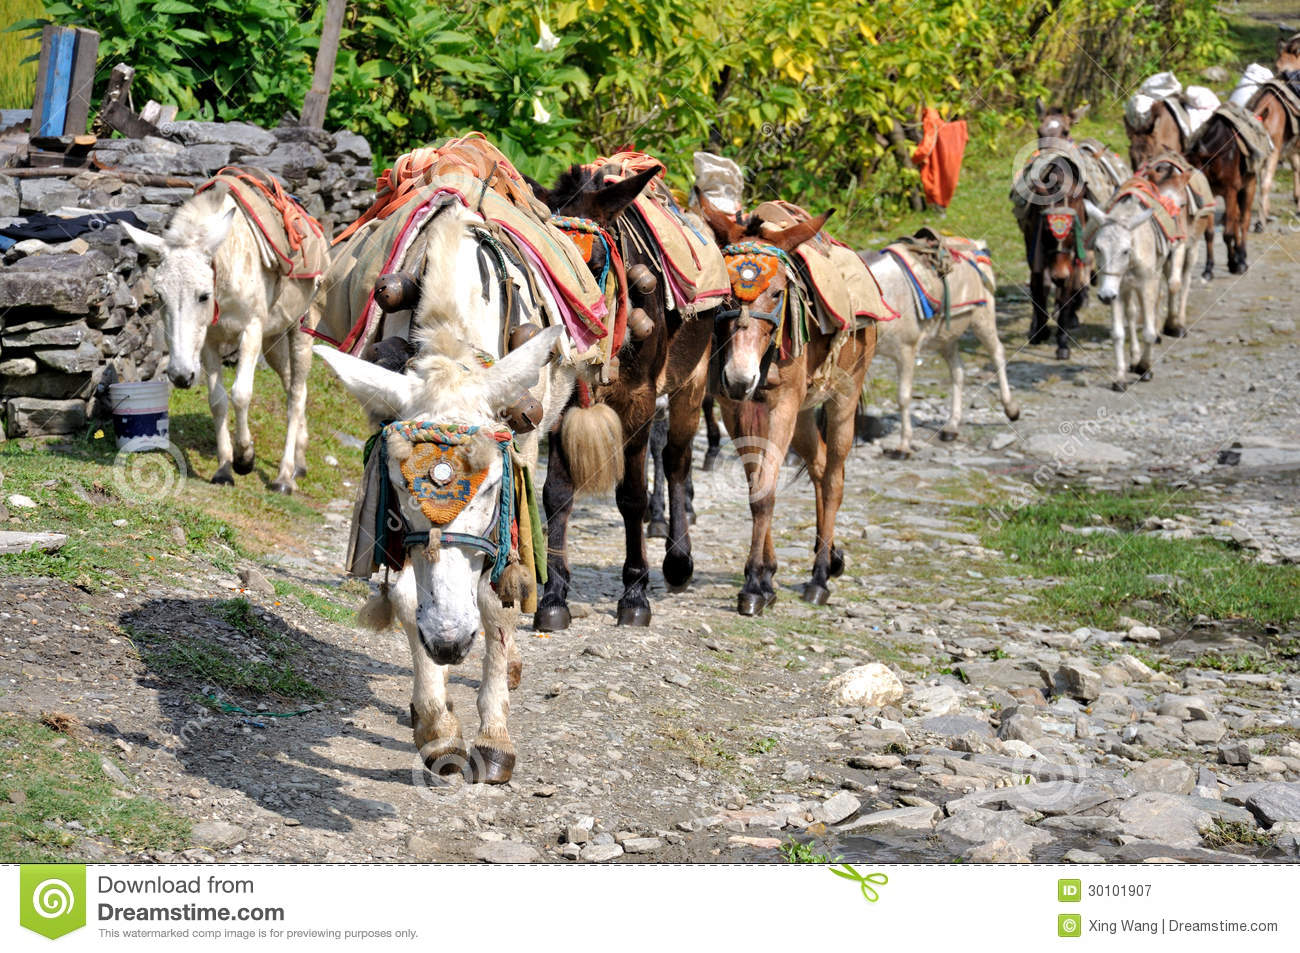 Pack Horses In The Himalayas Stock Image - Image: 30101907